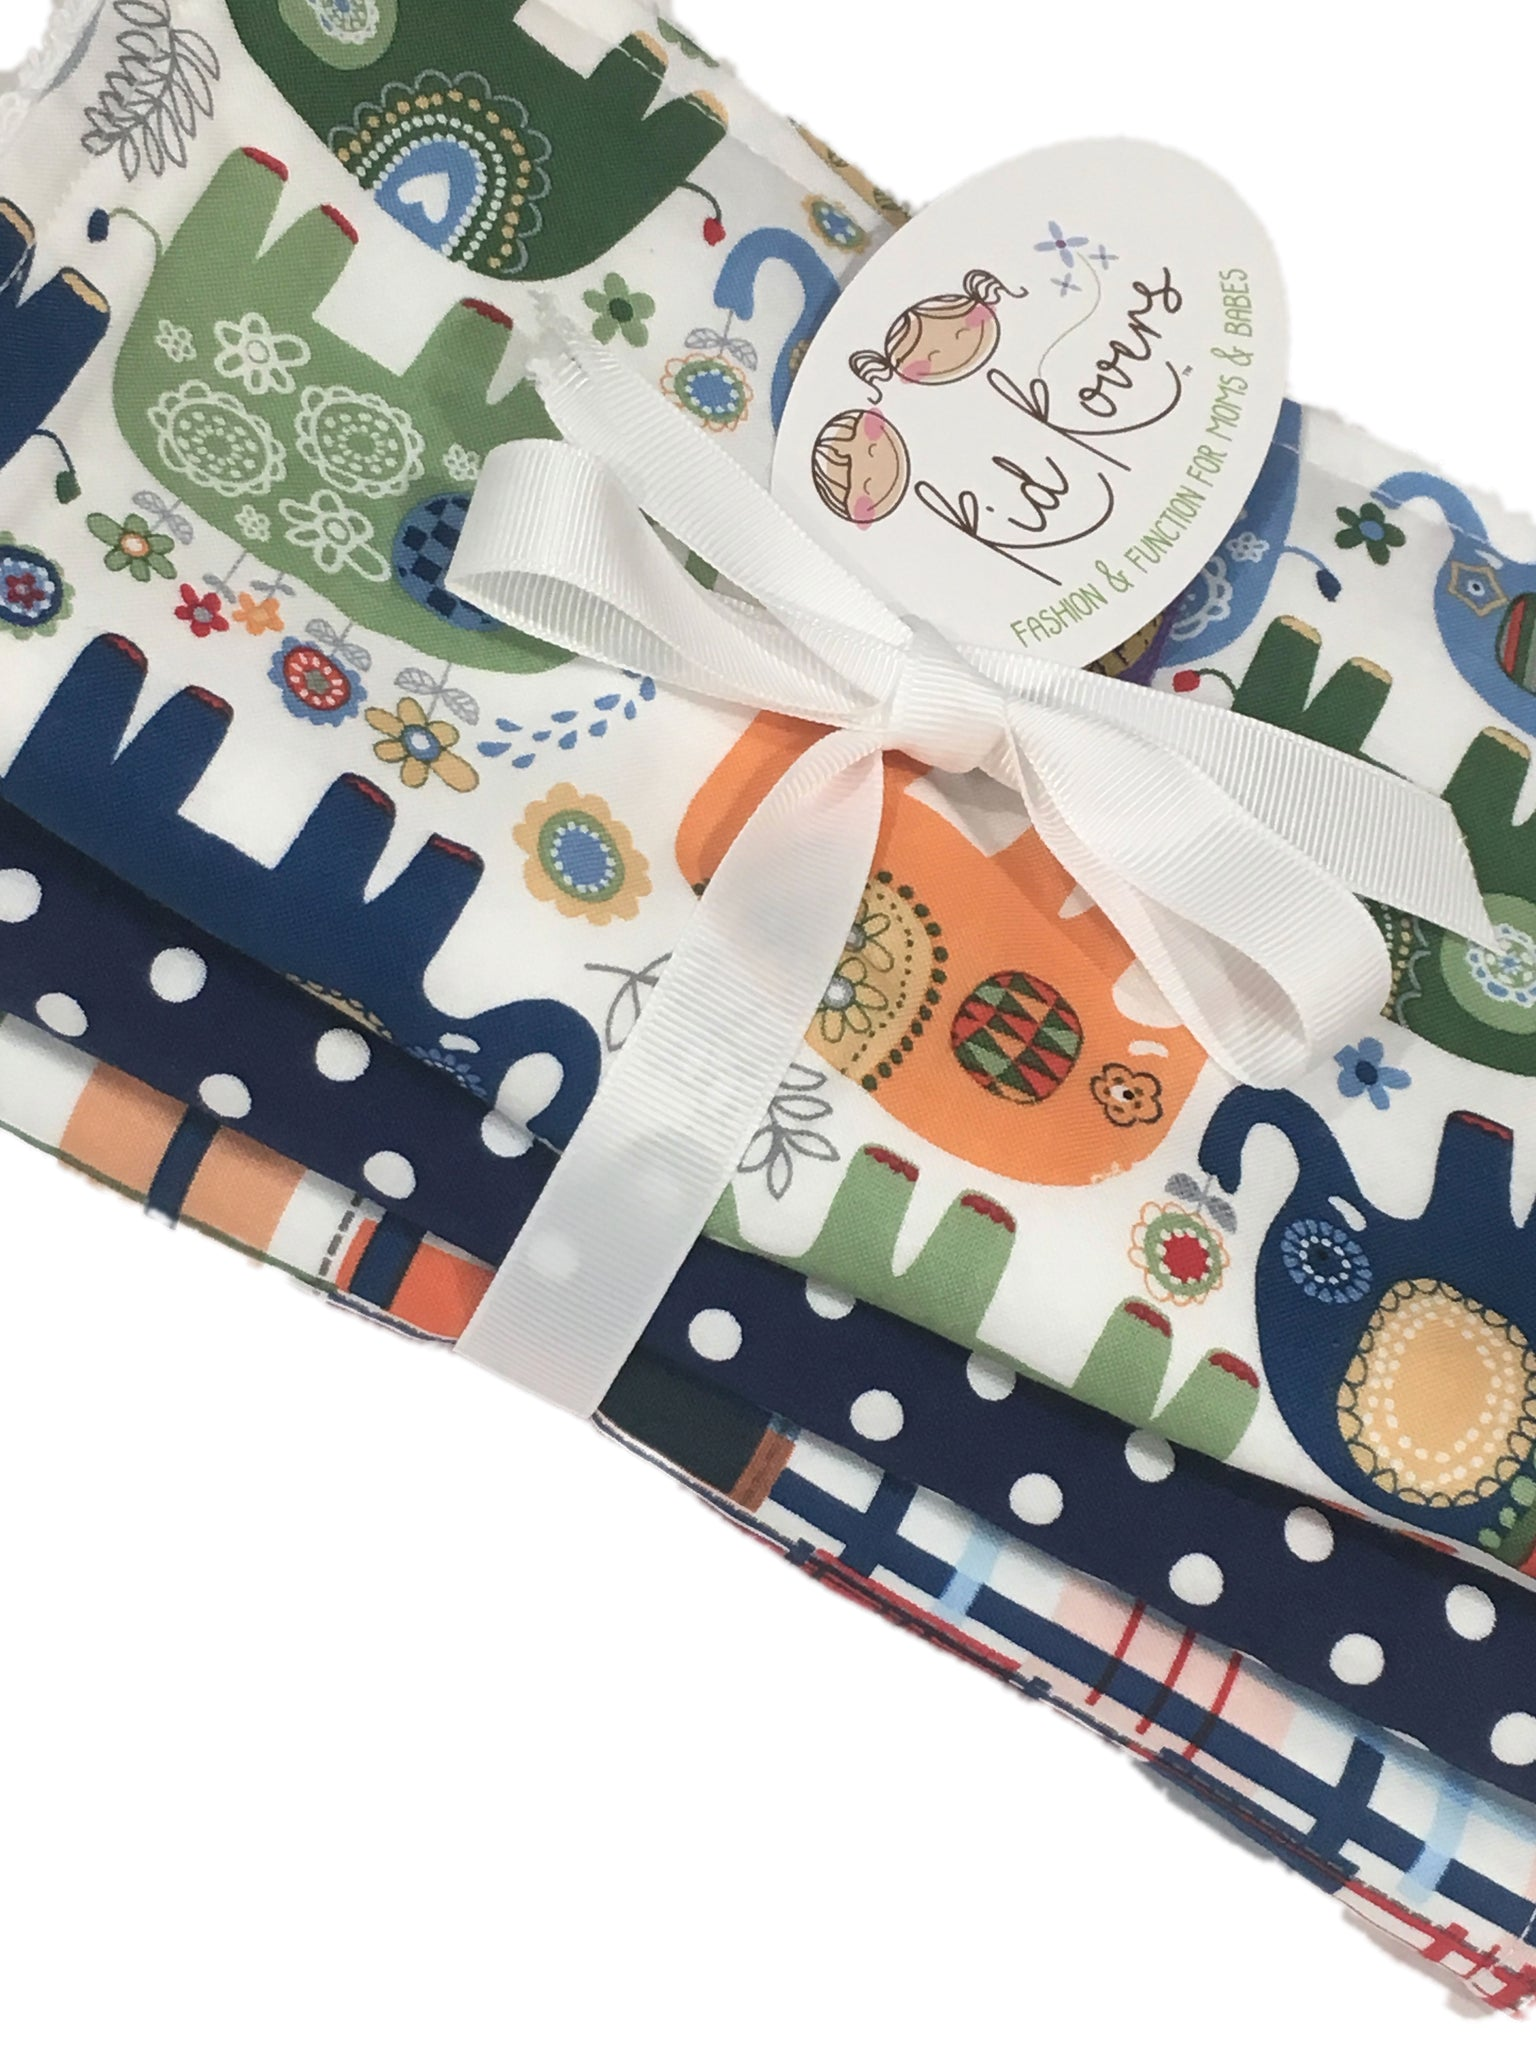 "Blue Happy Elephant, Navy Dot, and Madras, Set of 3 Burp Cloths, 10x20"" absorbent cotton Terry cloth."